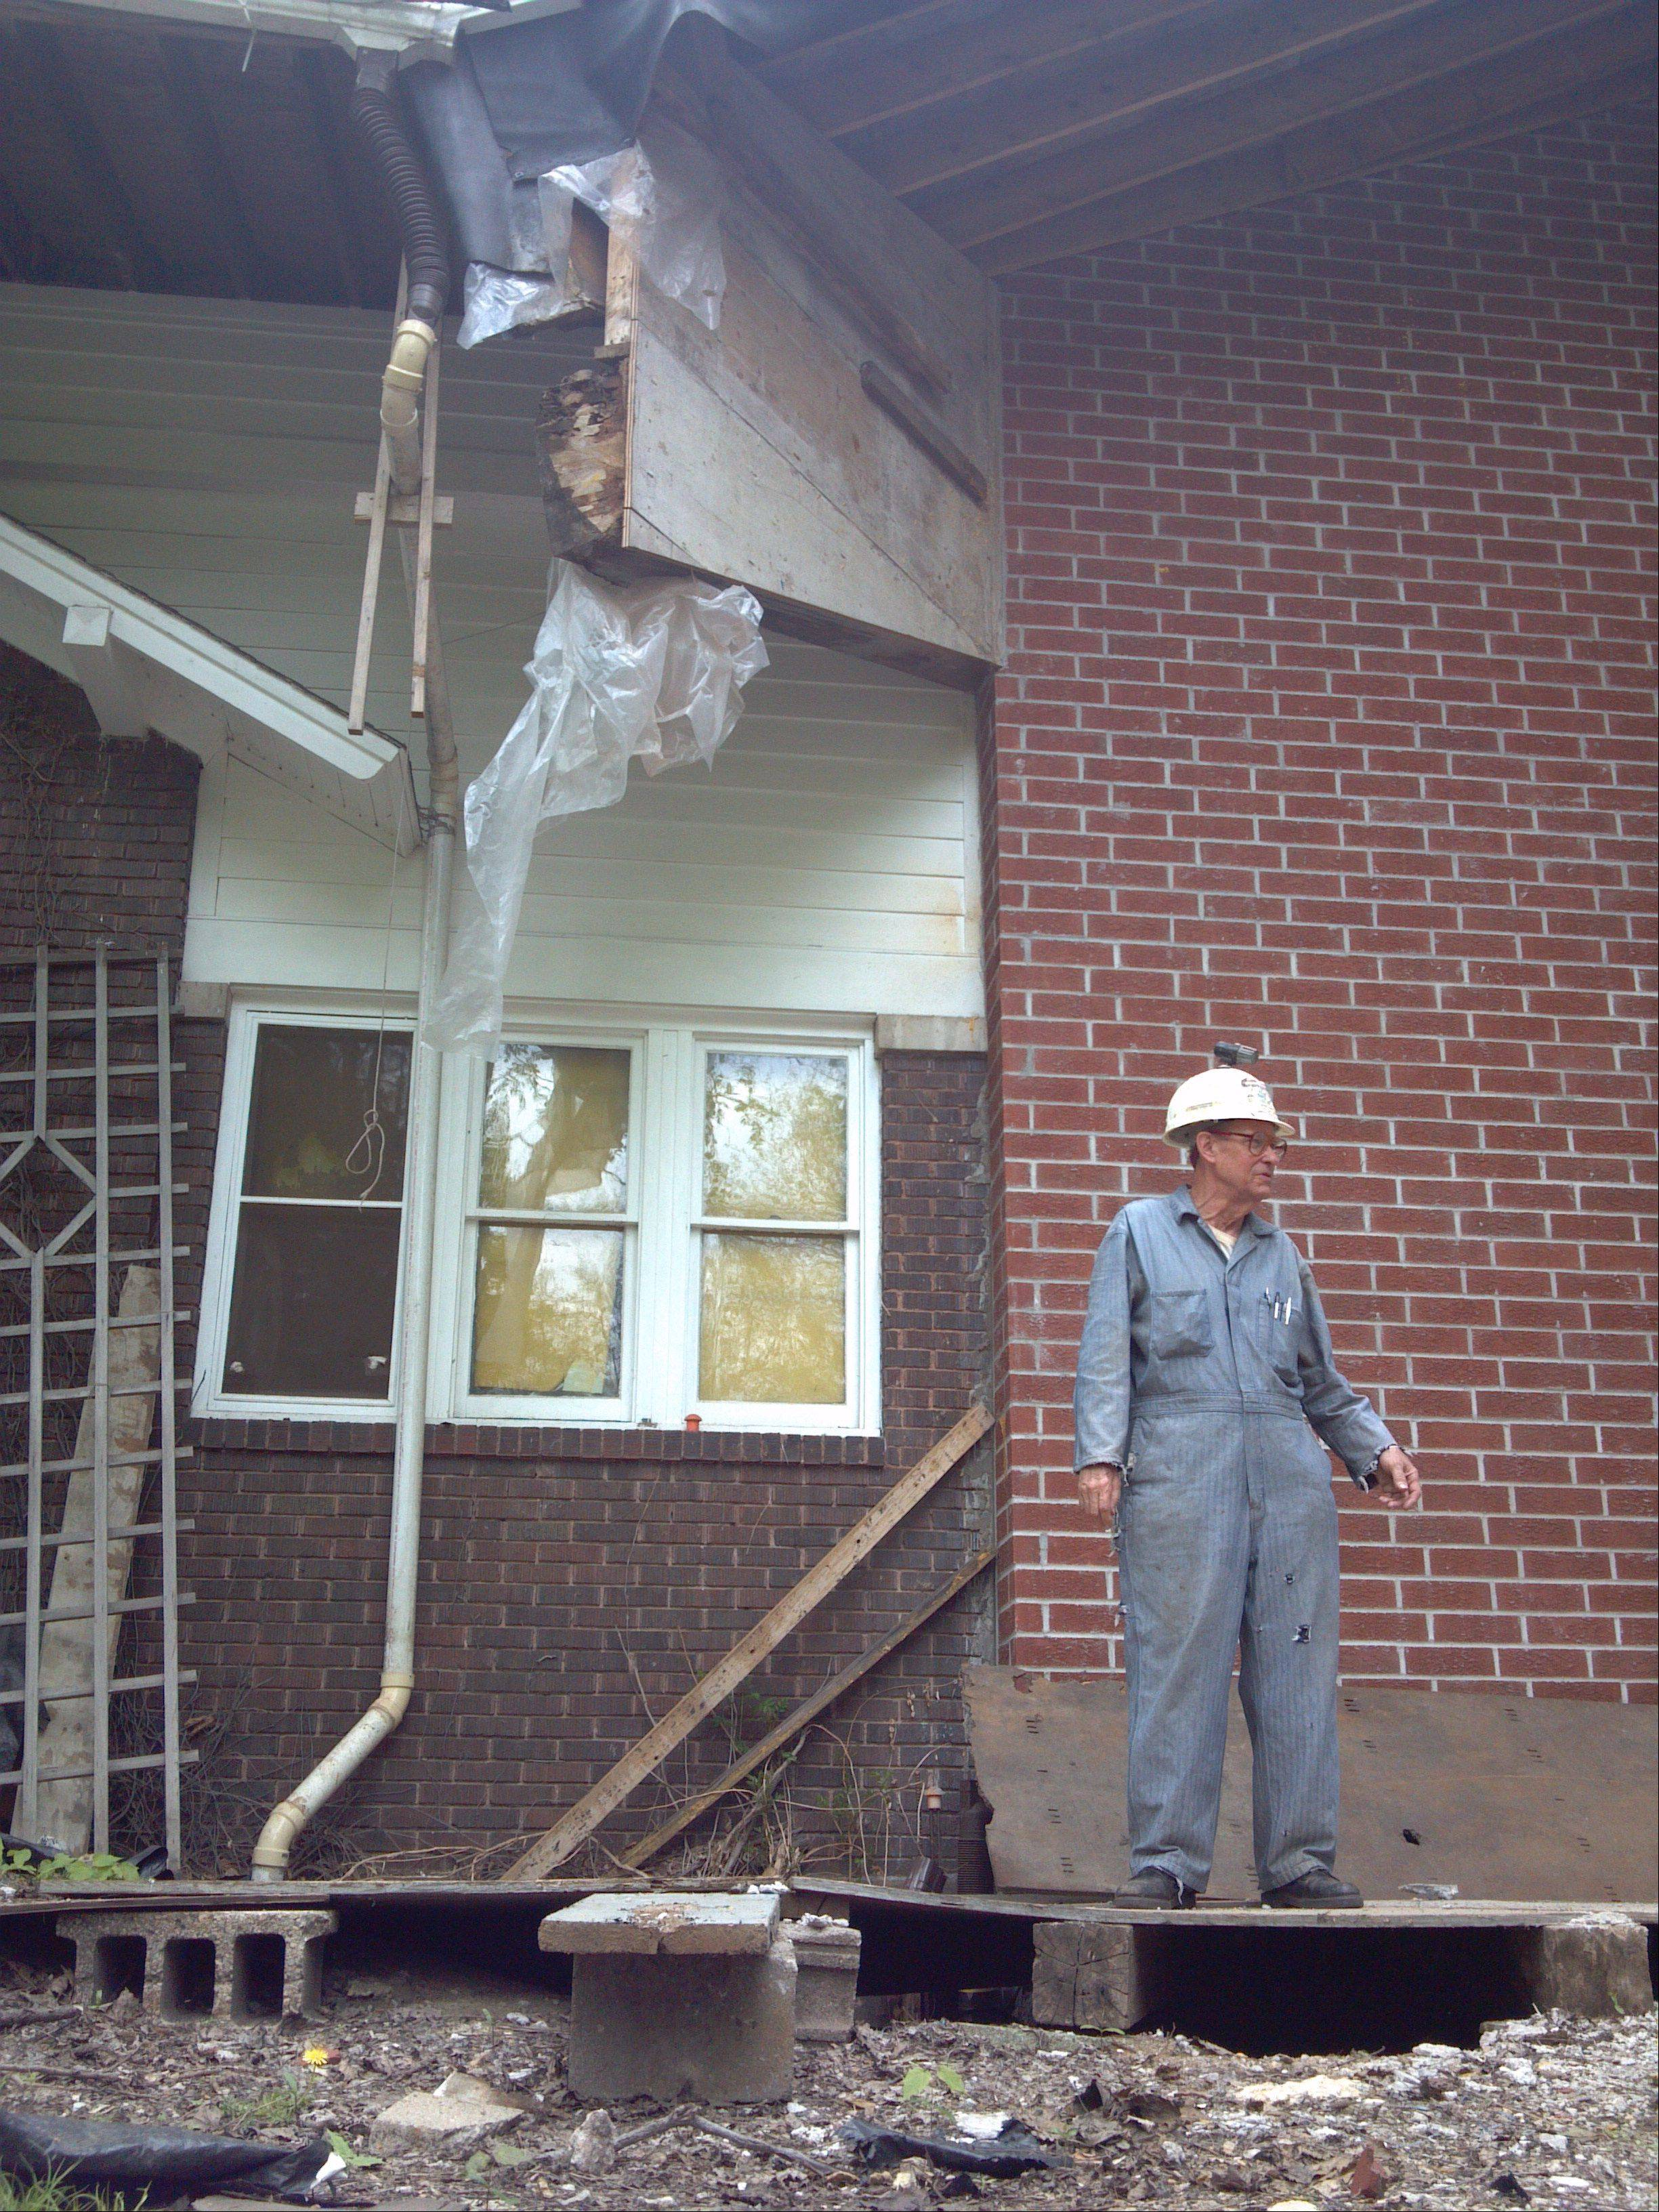 Cliff McIlvaine, who was sued by the city of St. Charles in an effort to get him to finish a project that he first pulled a permit for in 1975, stands on a landing between his original home to the left and new, super-insulated addition on the right, which he hopes to turn into a museum for his and his father�s inventions, along with city memorabilia.